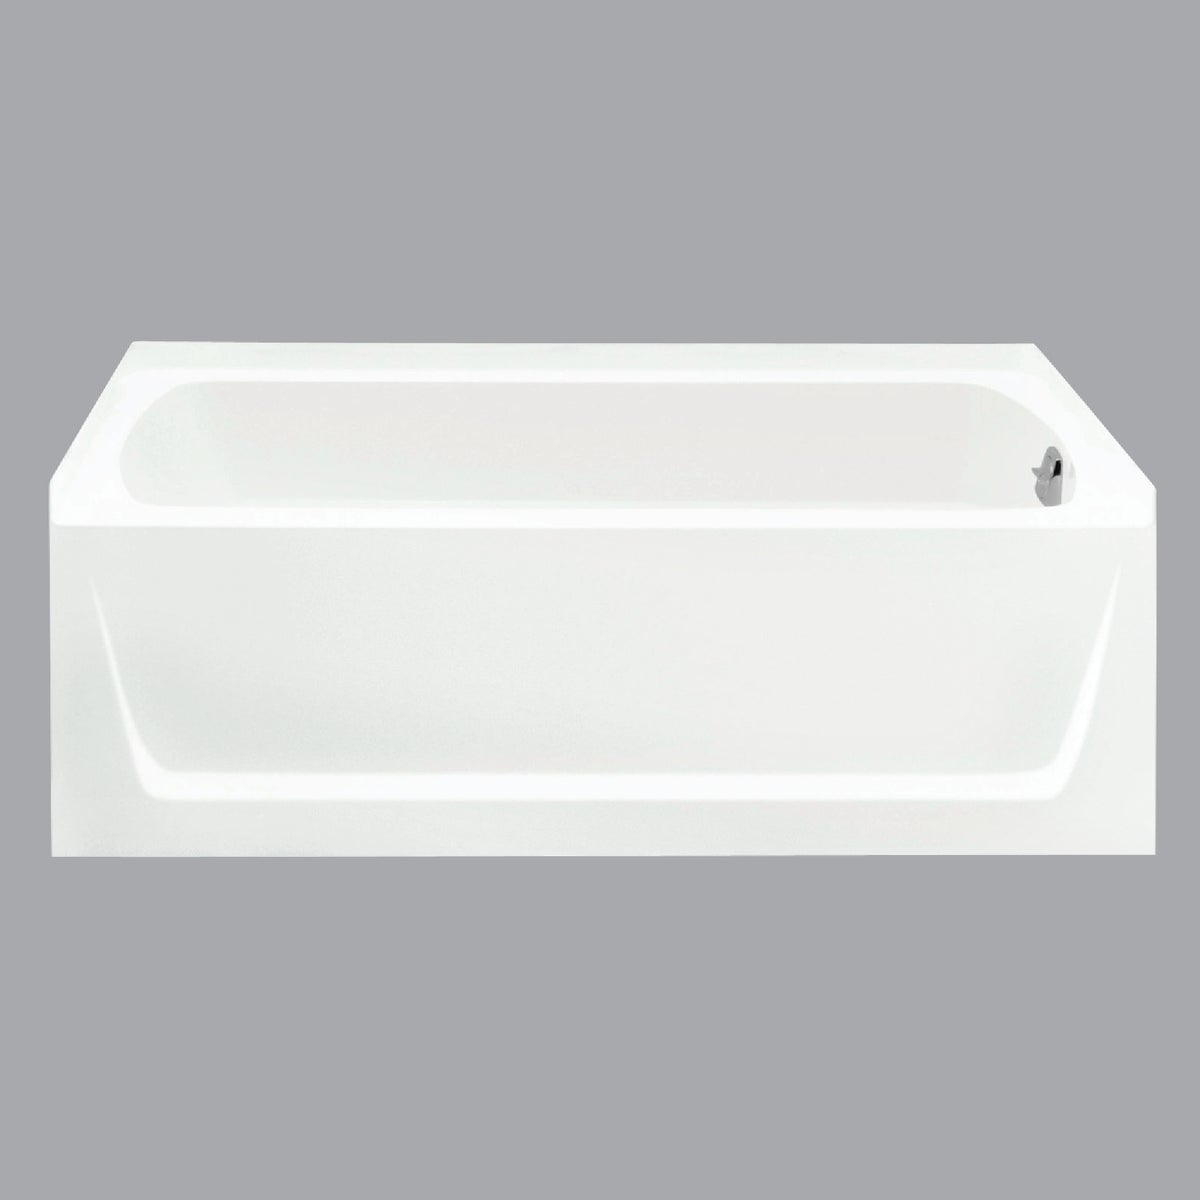 "32"" WHT RH ENSEMBLE TUB - 71121120-0 by Sterling Pbg/vikrell"